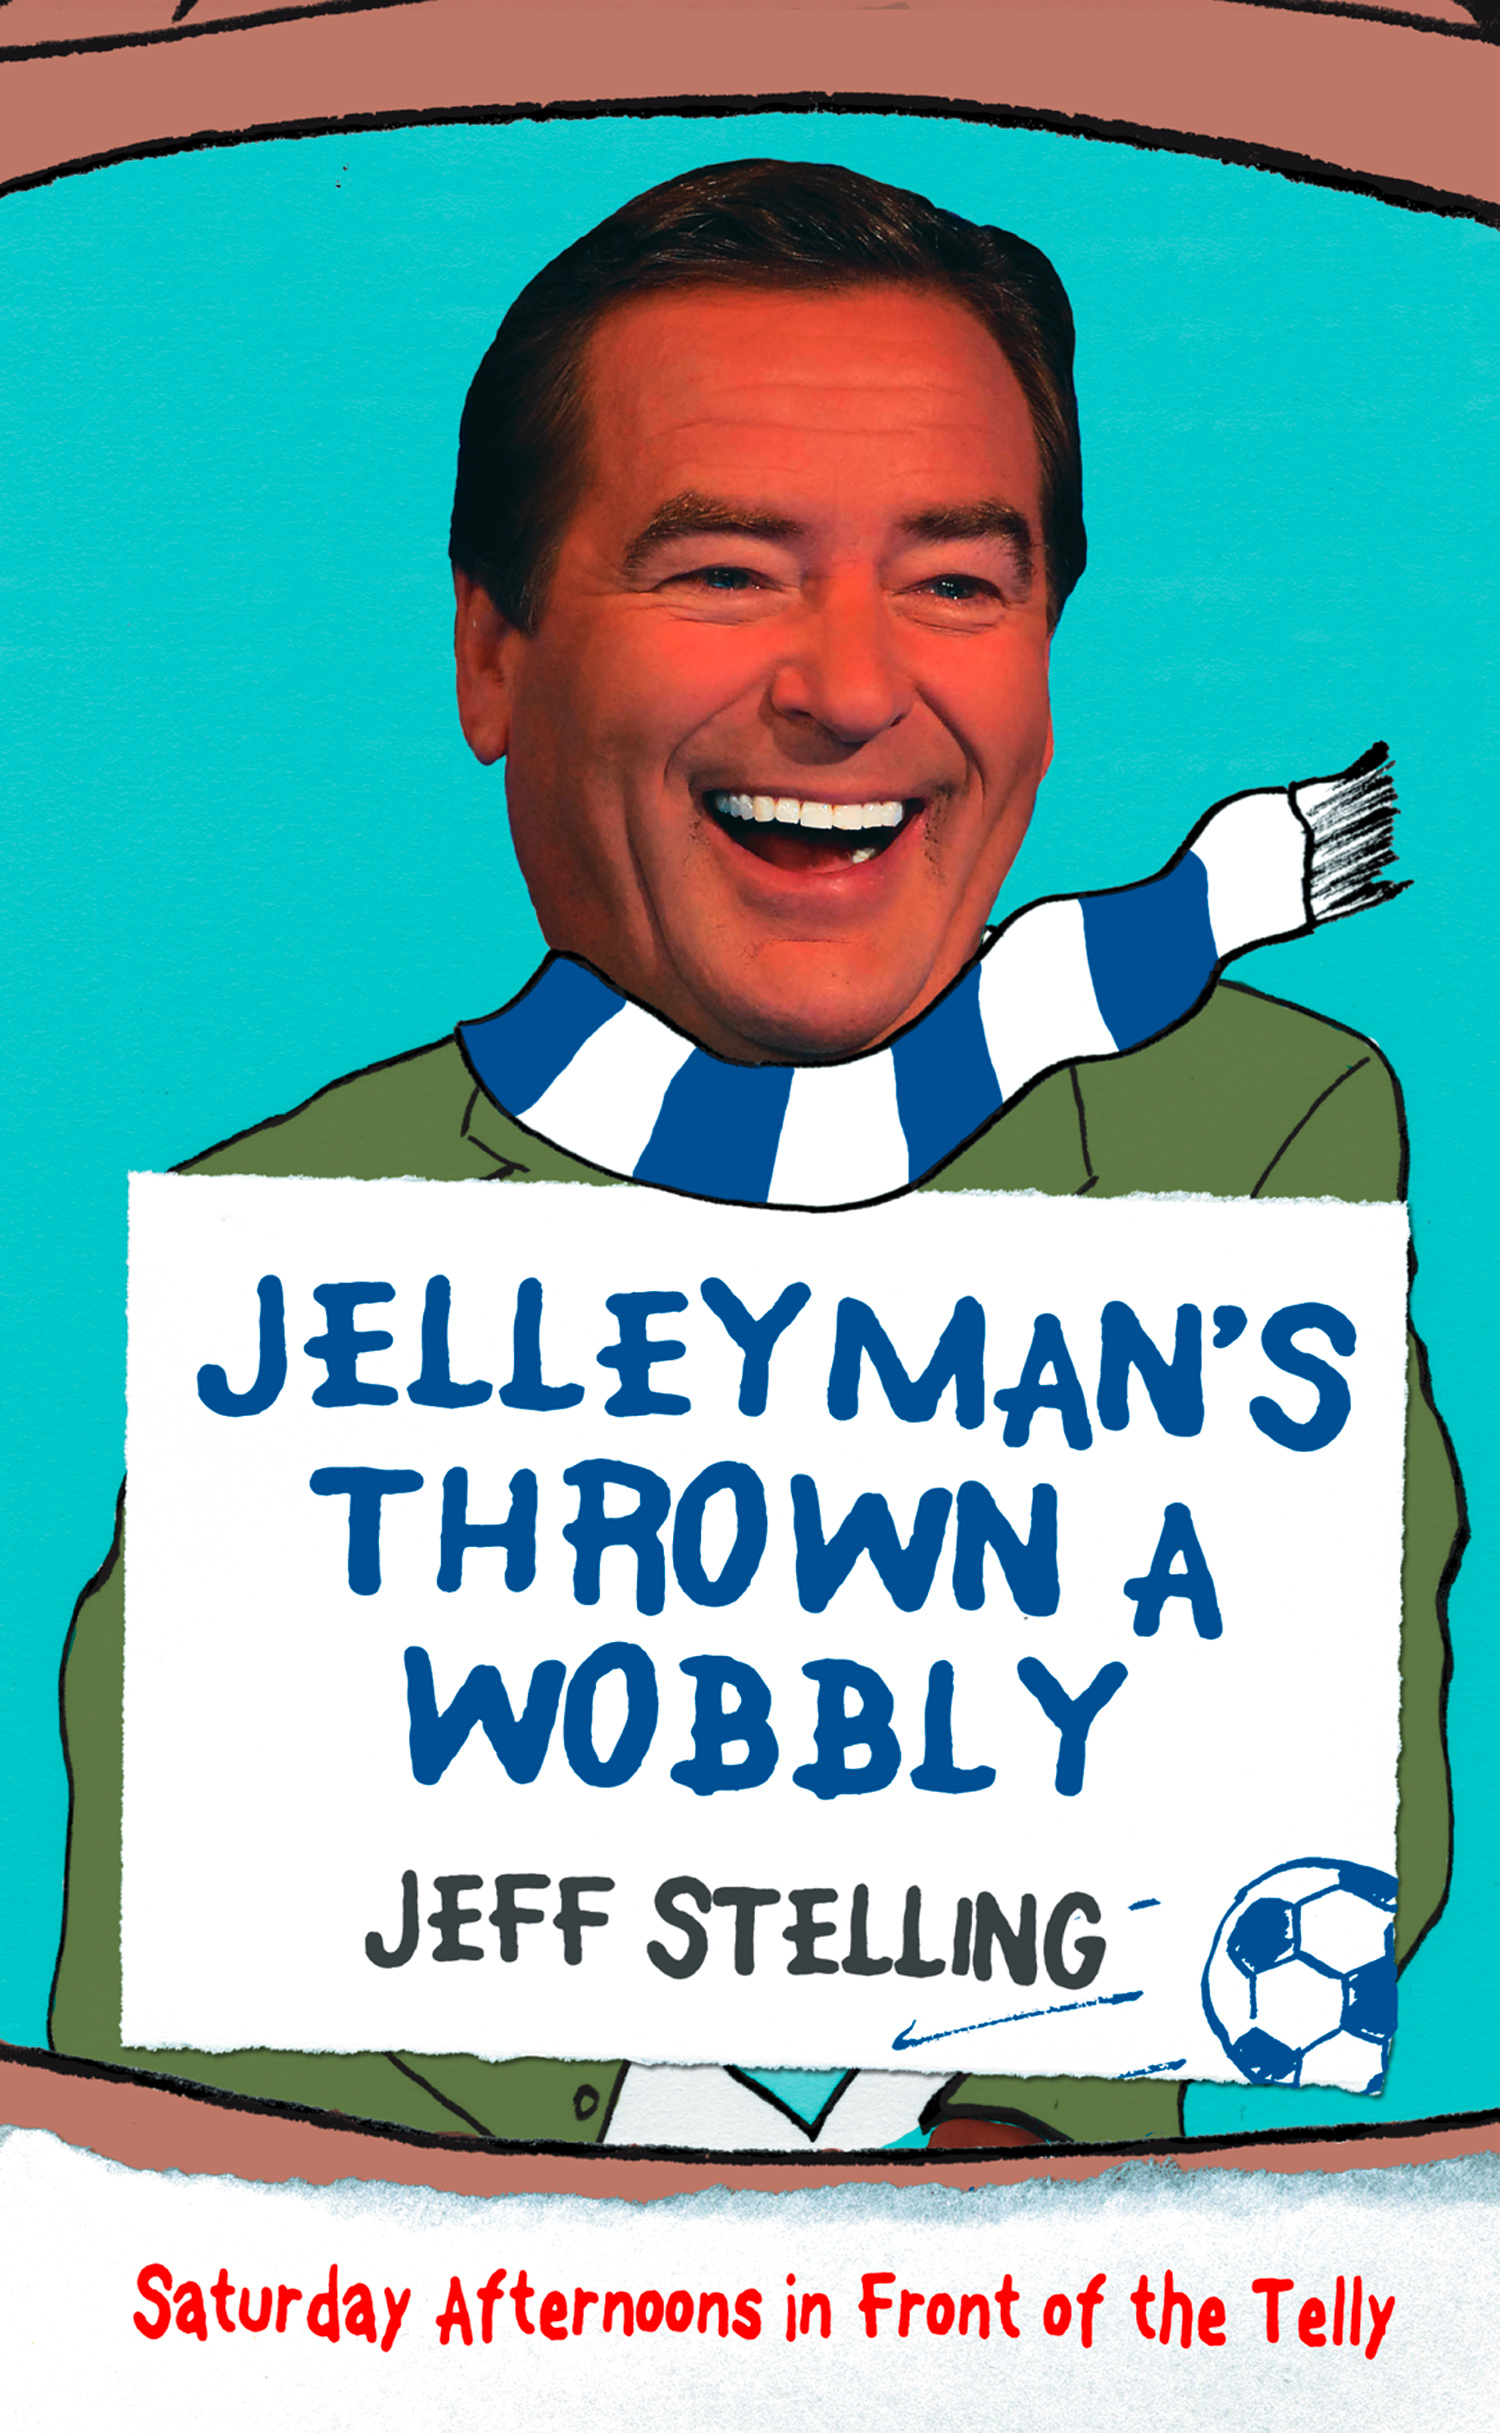 Jelleyman's Thrown a Wobbly: Saturday Afternoons in Front of the Telly